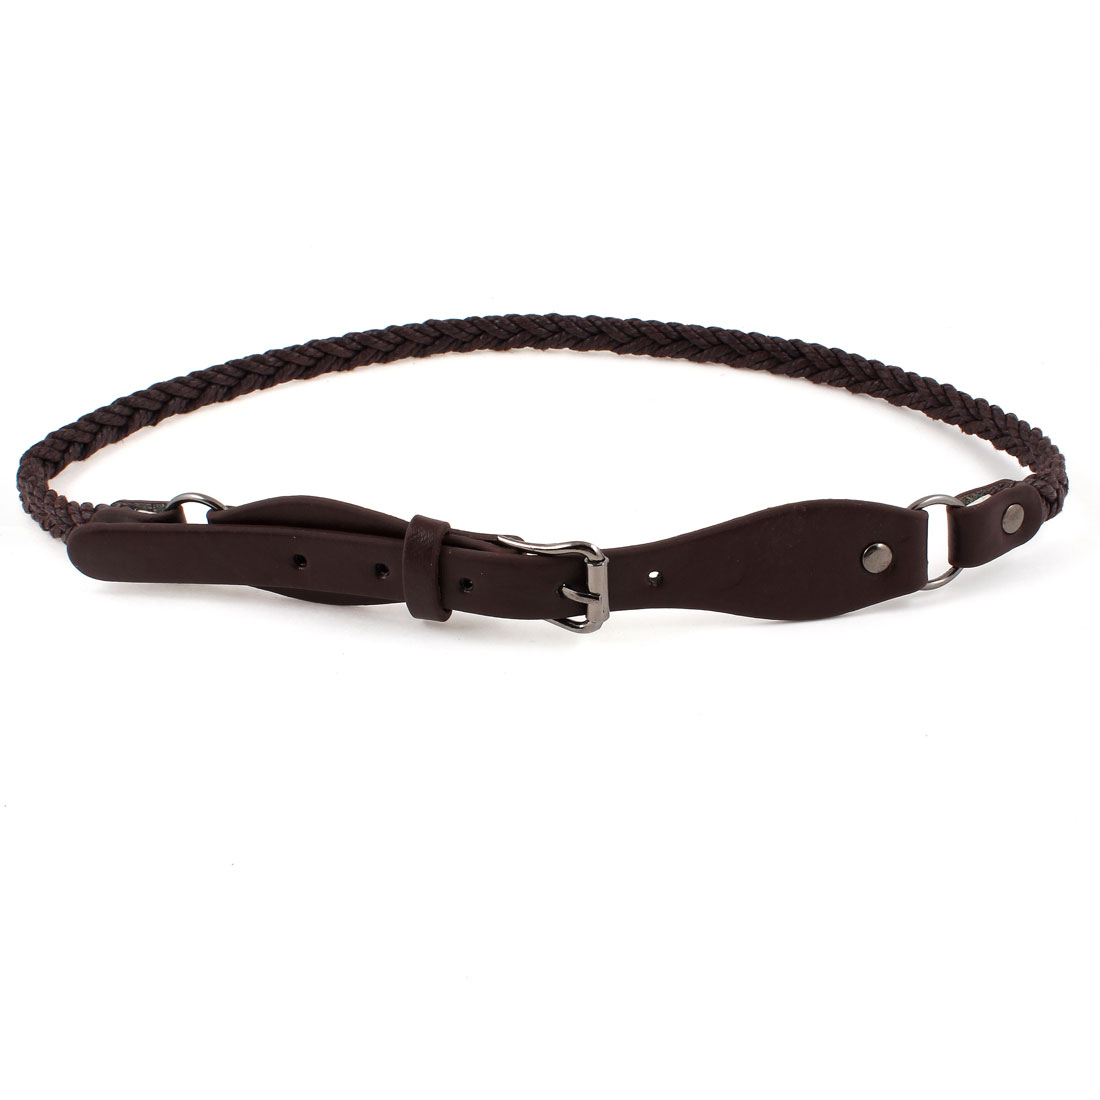 Lady Faux Leather 1.8cm Wide Single Prong Buckle Braided Waist Belt Coffee Color